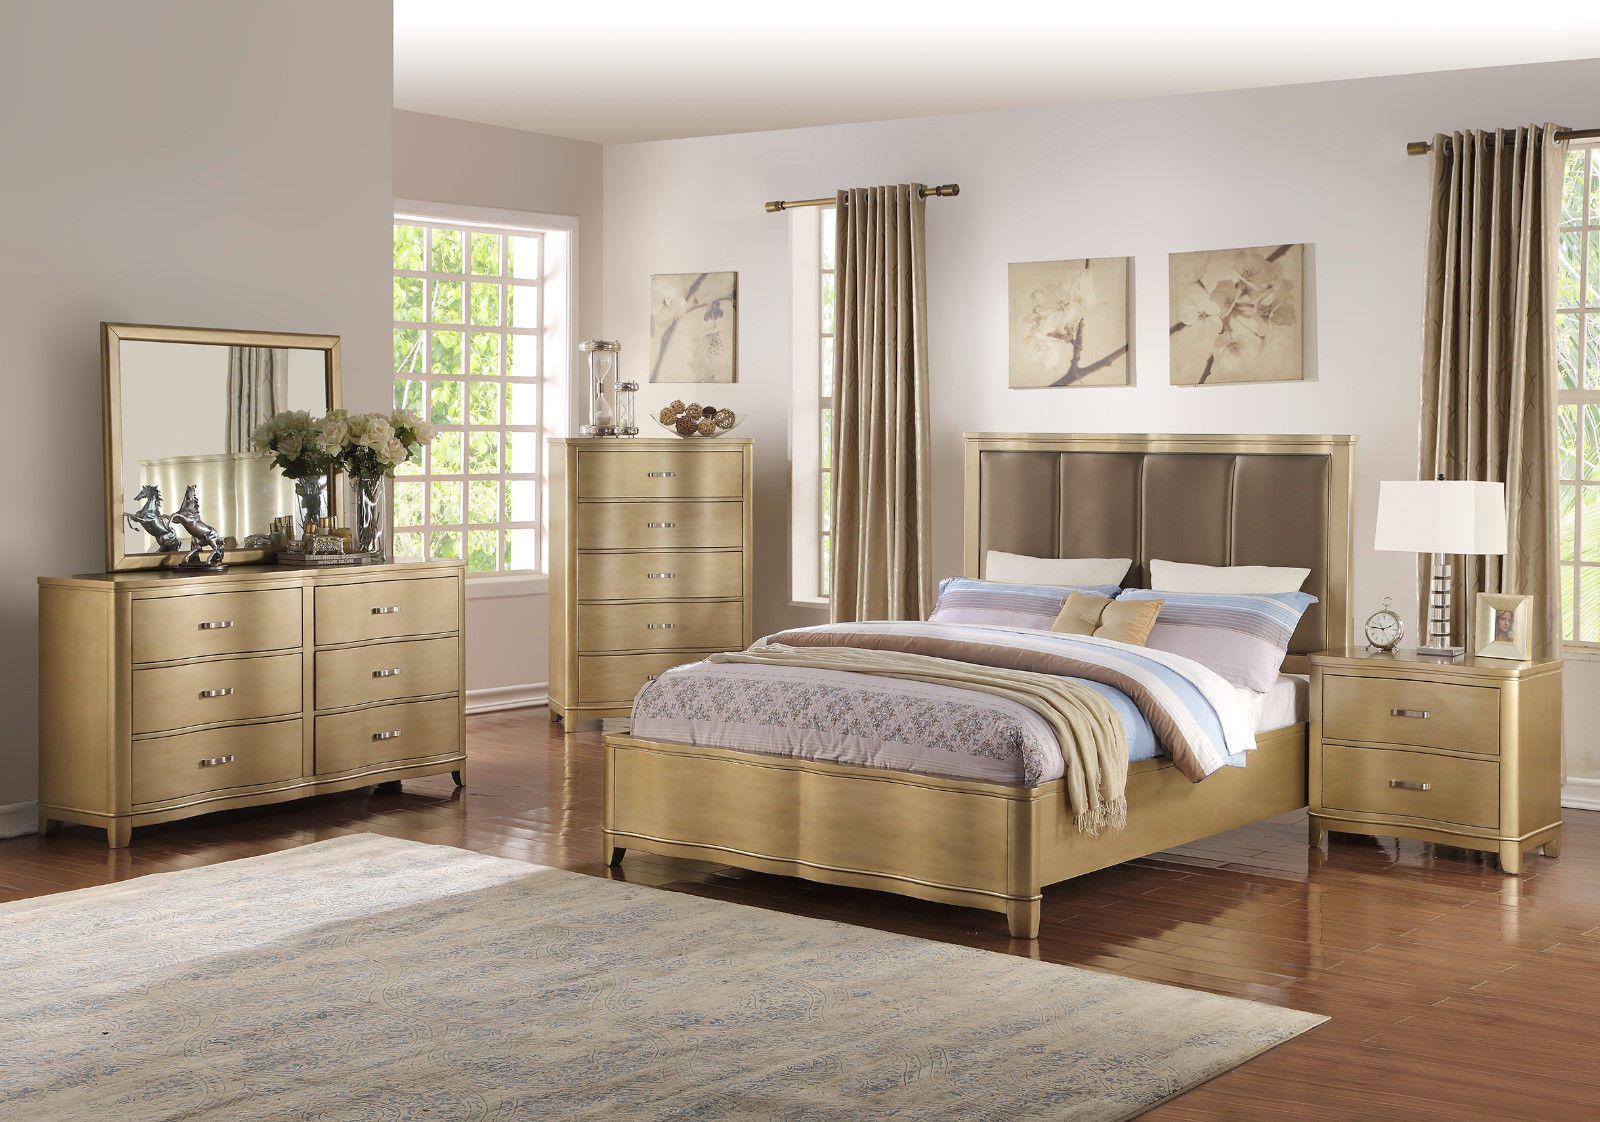 Unique Modern Light Wood 4pc Bedroom Set Est King Bed